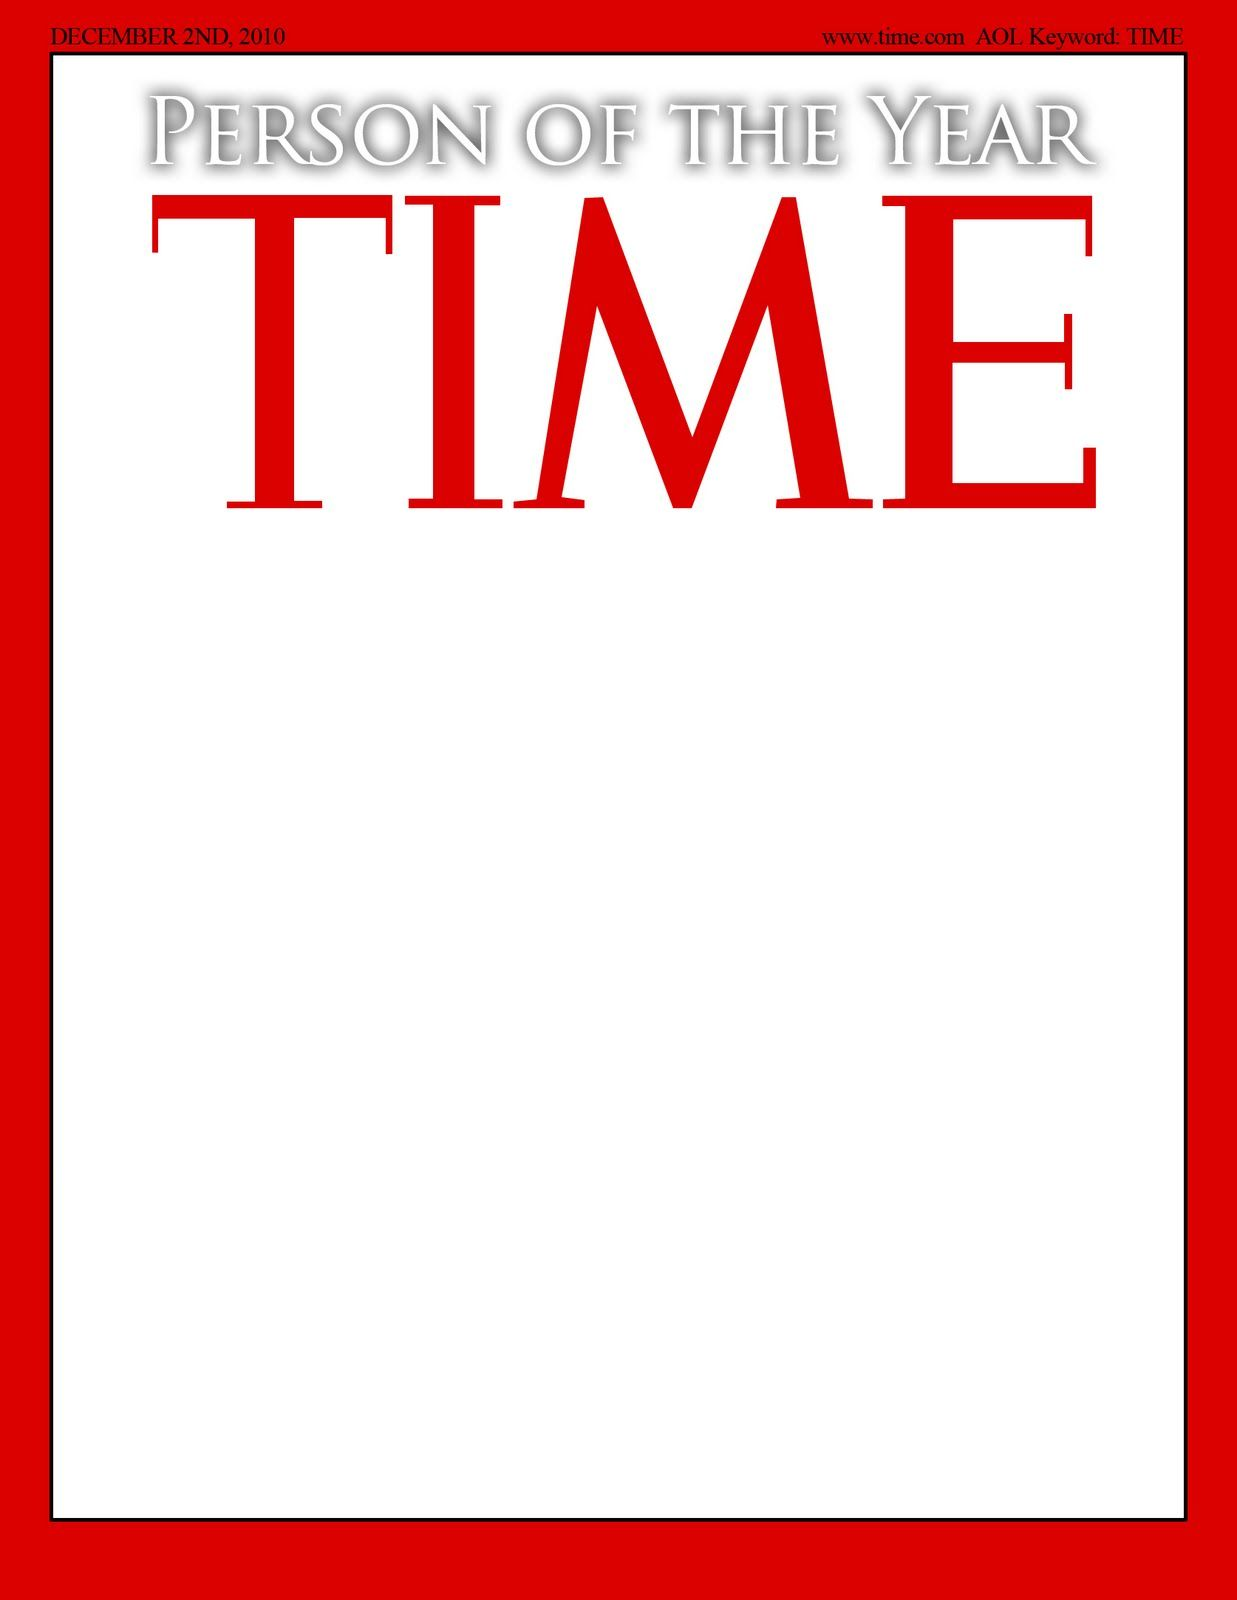 Time Cover Click And Download This Time Magazine Cover Use Any Images From The Magazine Cover Template Cover Template Magazine Template